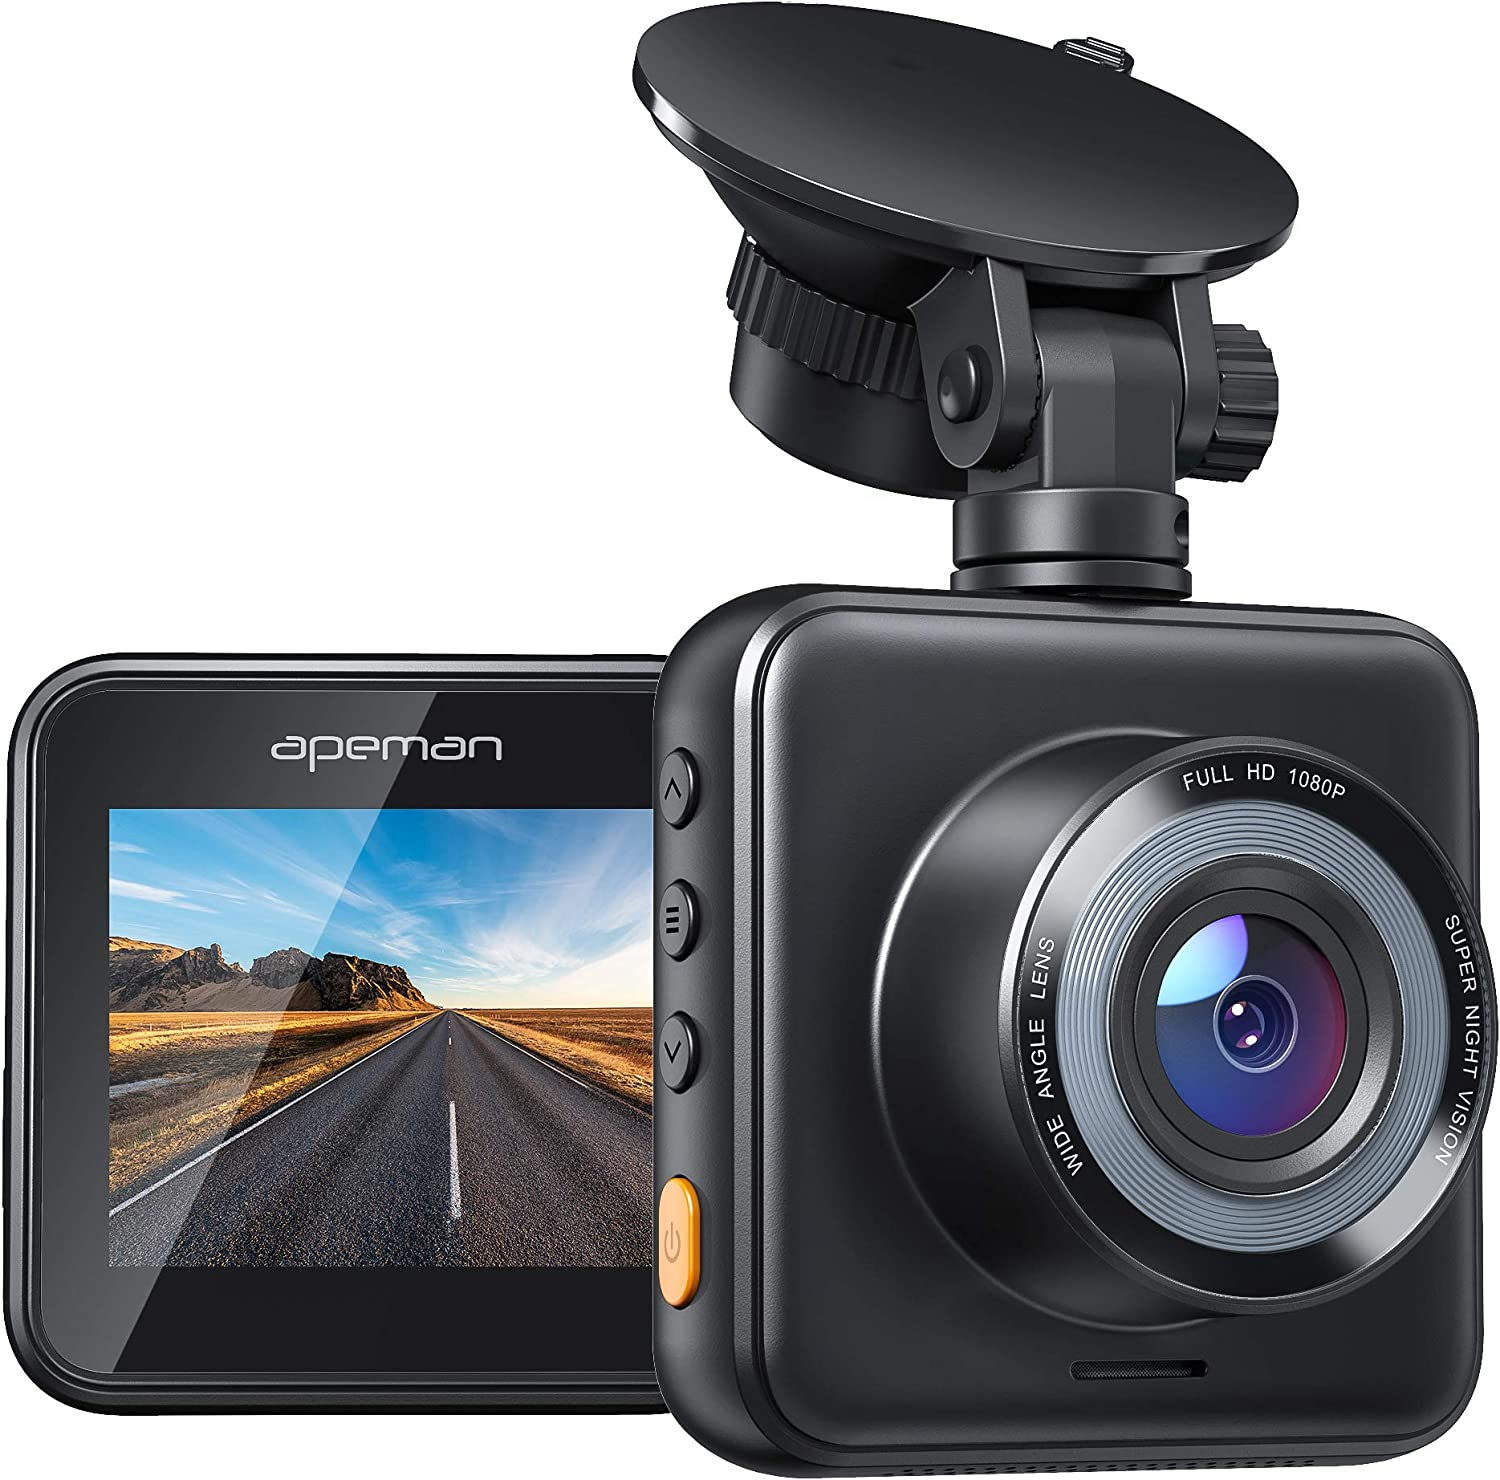 Amazon.com: APEMAN Mini Dash Cam 1080P Dash Camera for Cars Recorder Super  Night Vision, 170° Wide Angle, Motion Detection, Parking Monitoring,  G-Sensor, Loop Recording: Electronics